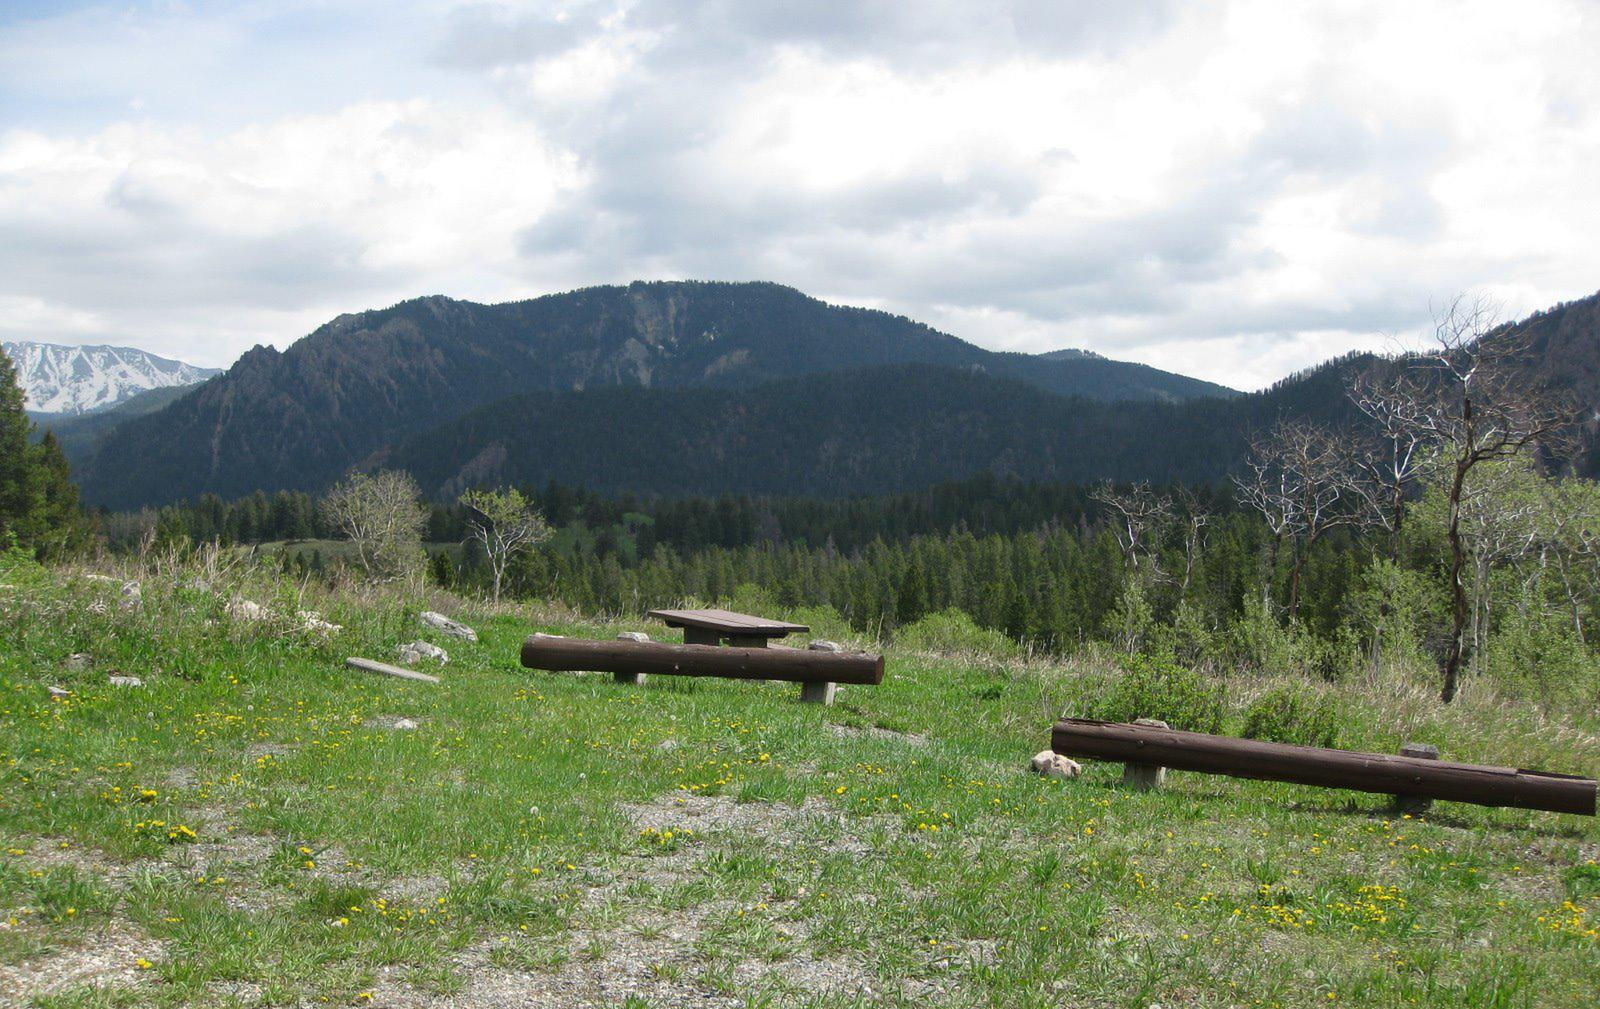 Site B13, campsite surrounded by pine trees, picnic table & fire ringSite B13